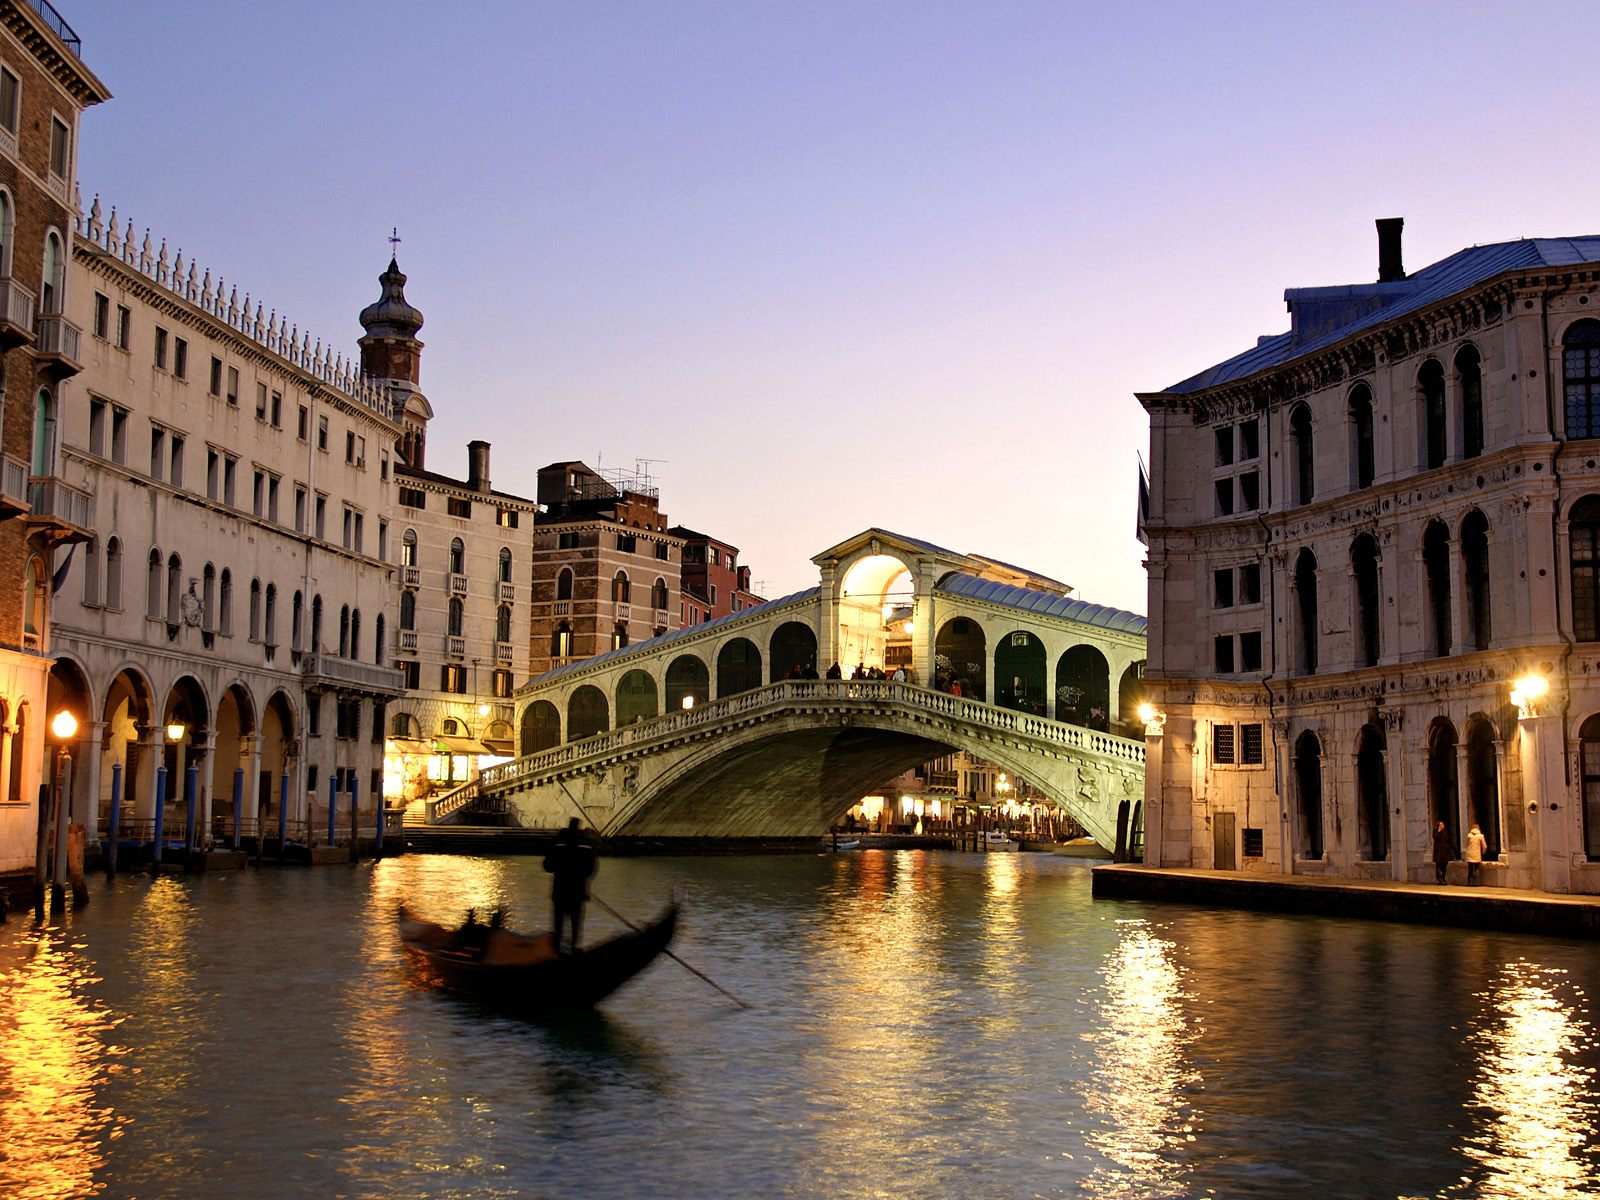 Rialto Bridge Grand Canal Italy 706.96 Kb